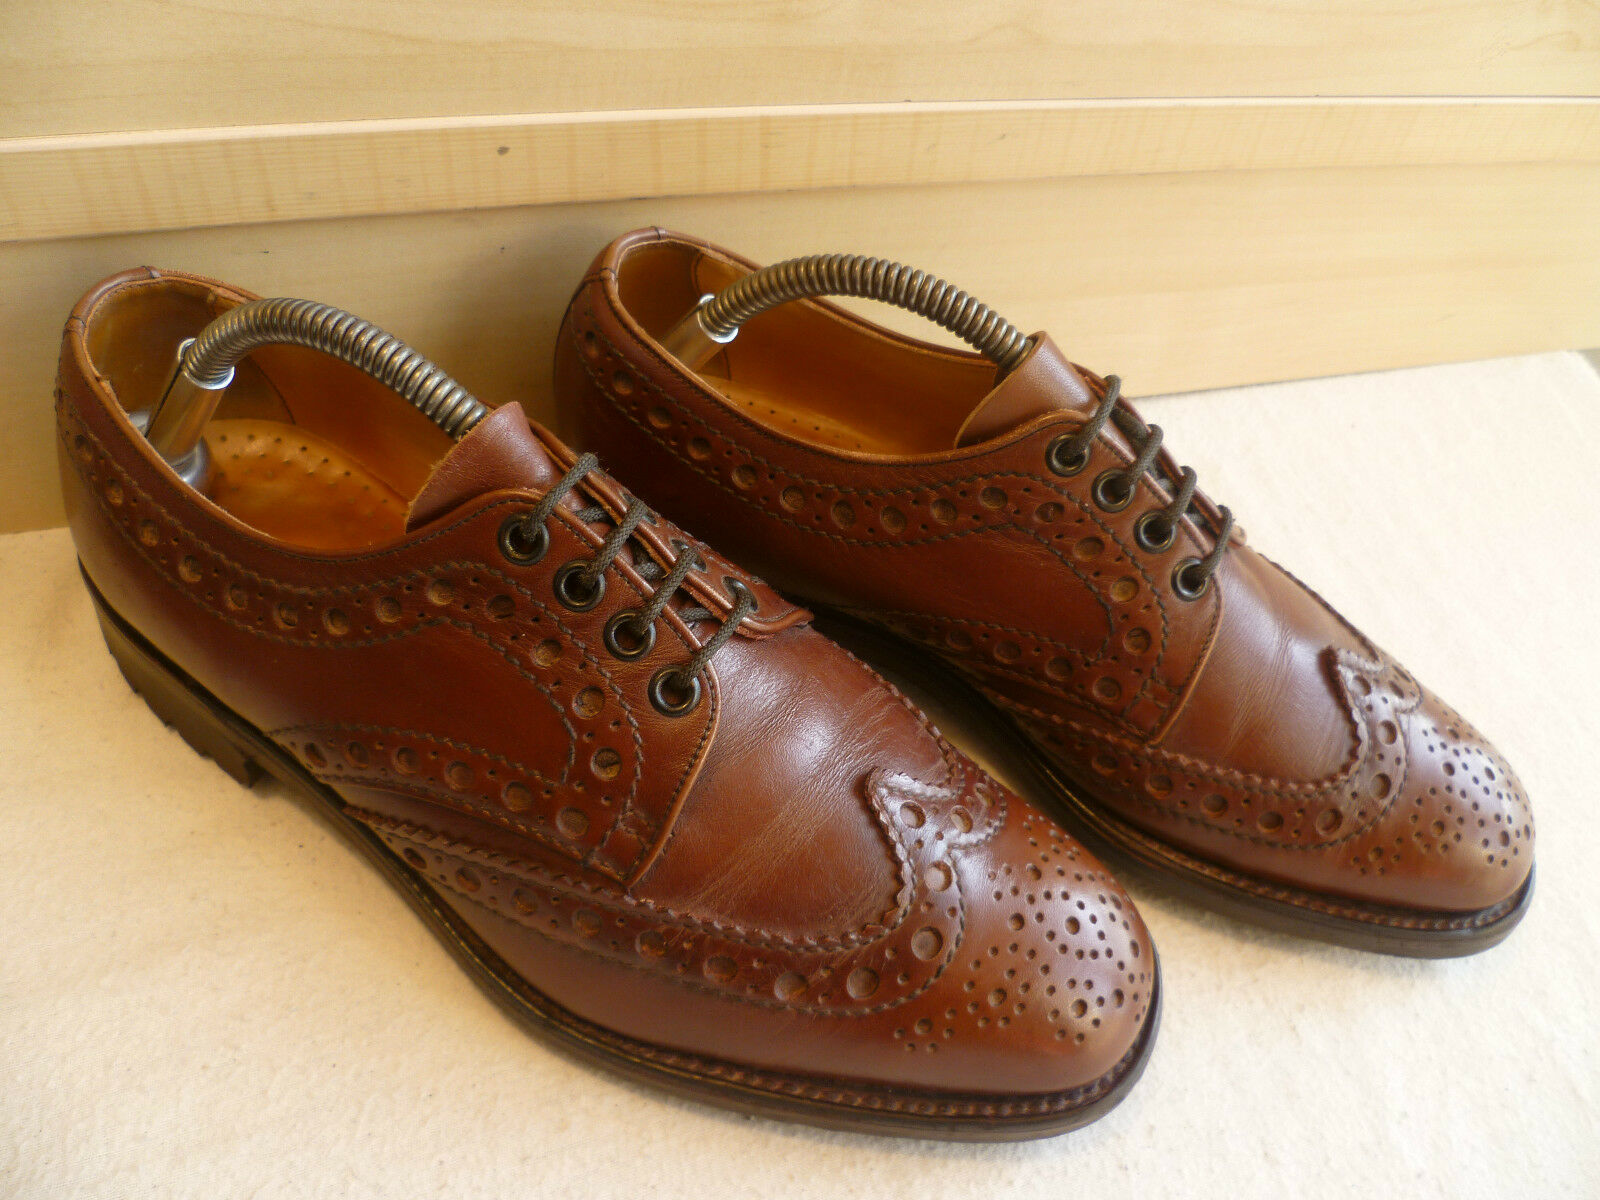 Loake Shoemakers wingtip country brogue UK 6.5 40 vtg brown wingtip Shoemakers derby Itshide sole c0bc49